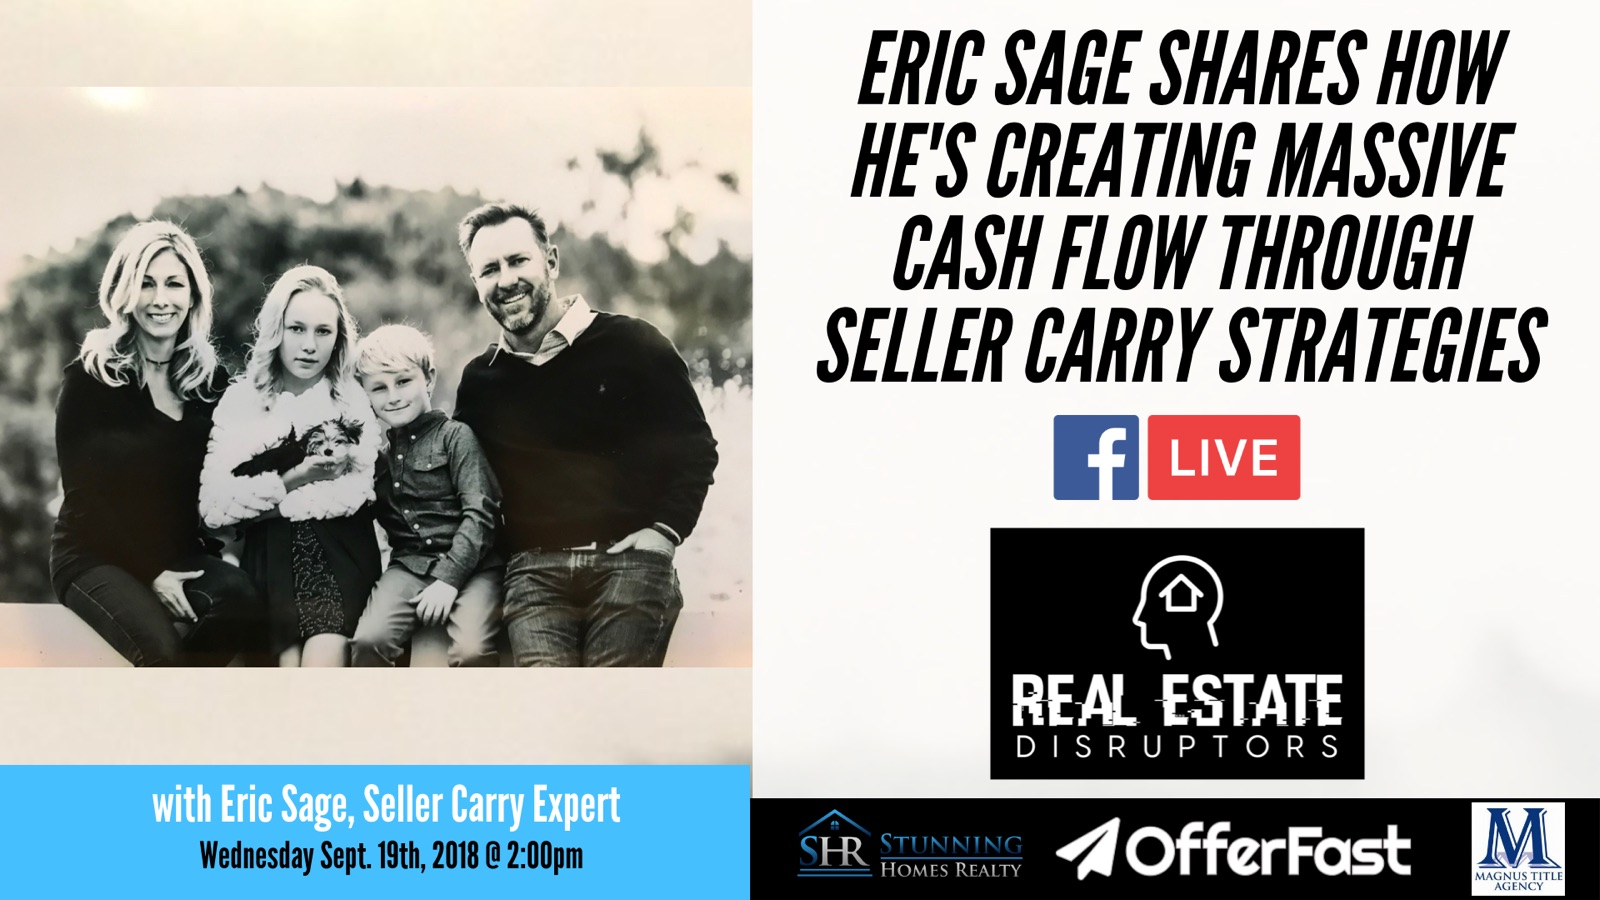 Interview with Eric Sage